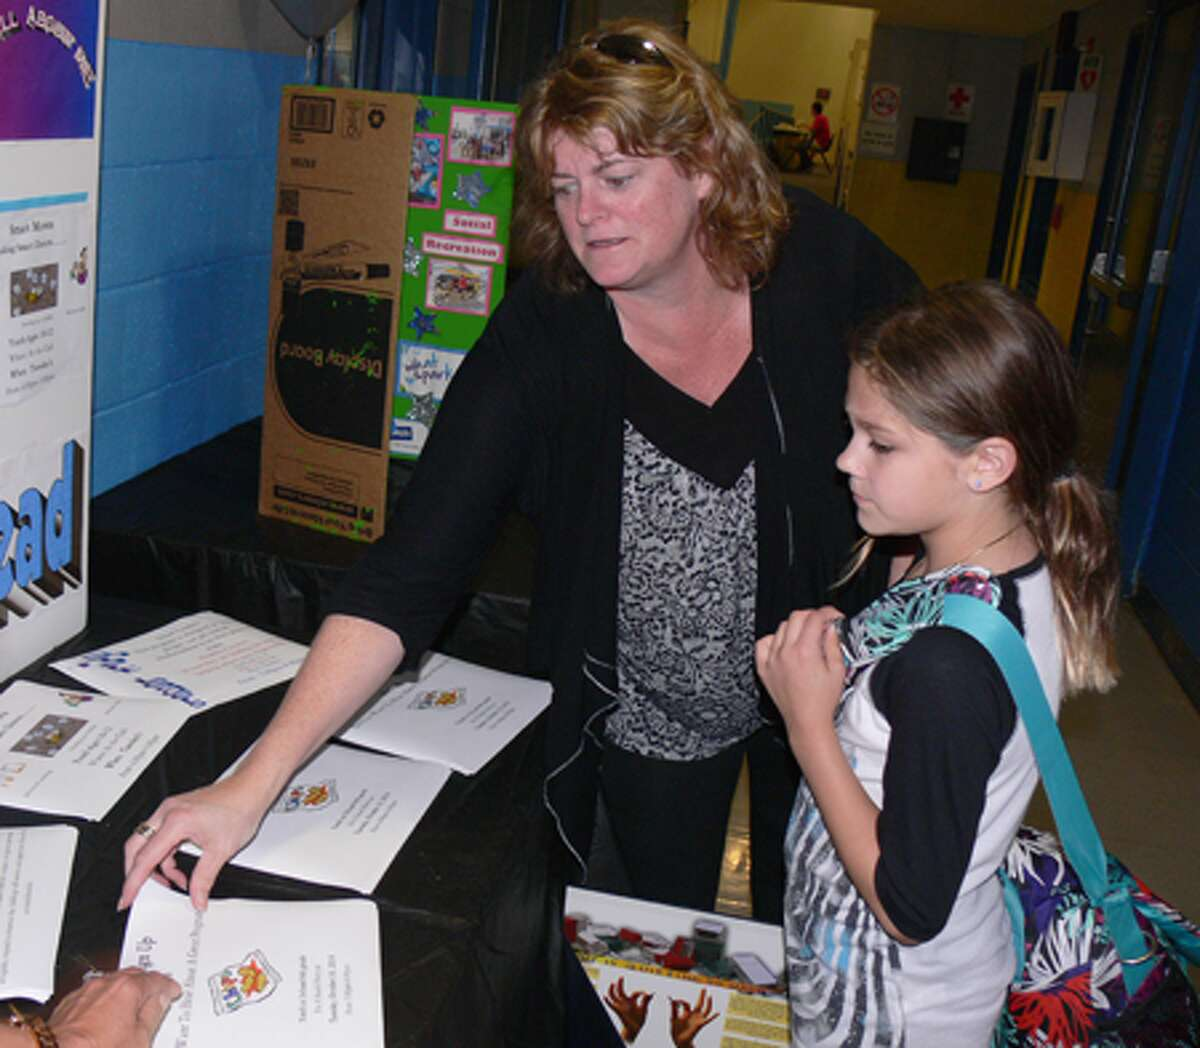 Tricia Santamaria and her daughter Kylin, 8, grab some literature at the Boys & Girls Club open house on Oct. 7 in Shelton.